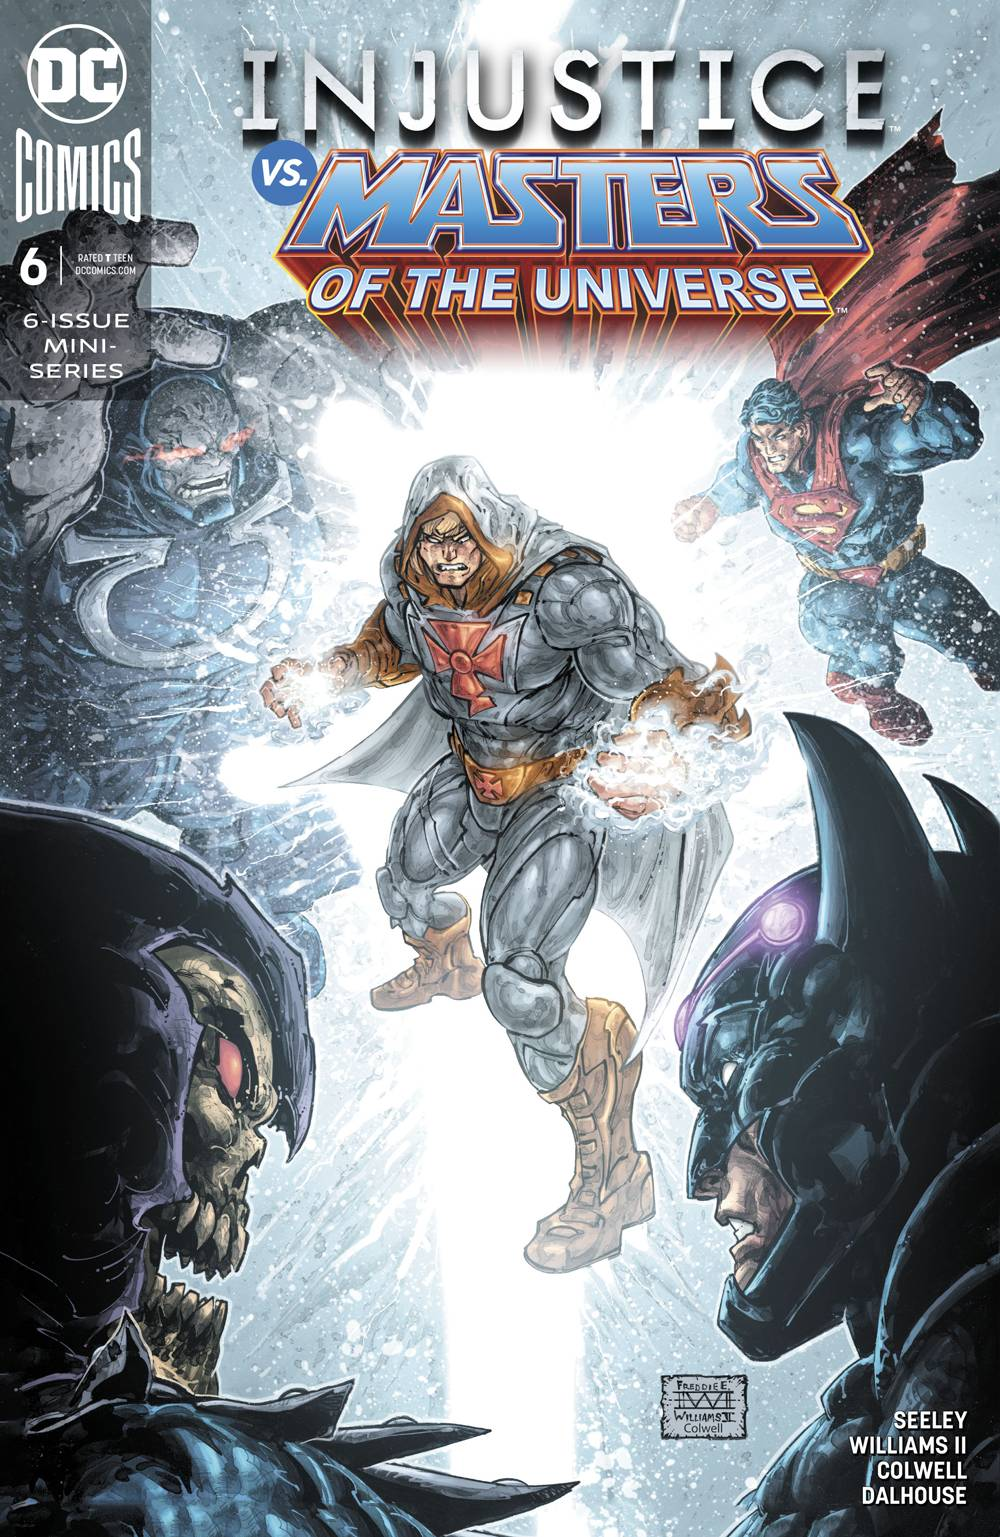 INJUSTICE VS THE MASTERS OF THE UNIVERSE 6 of 6.jpg